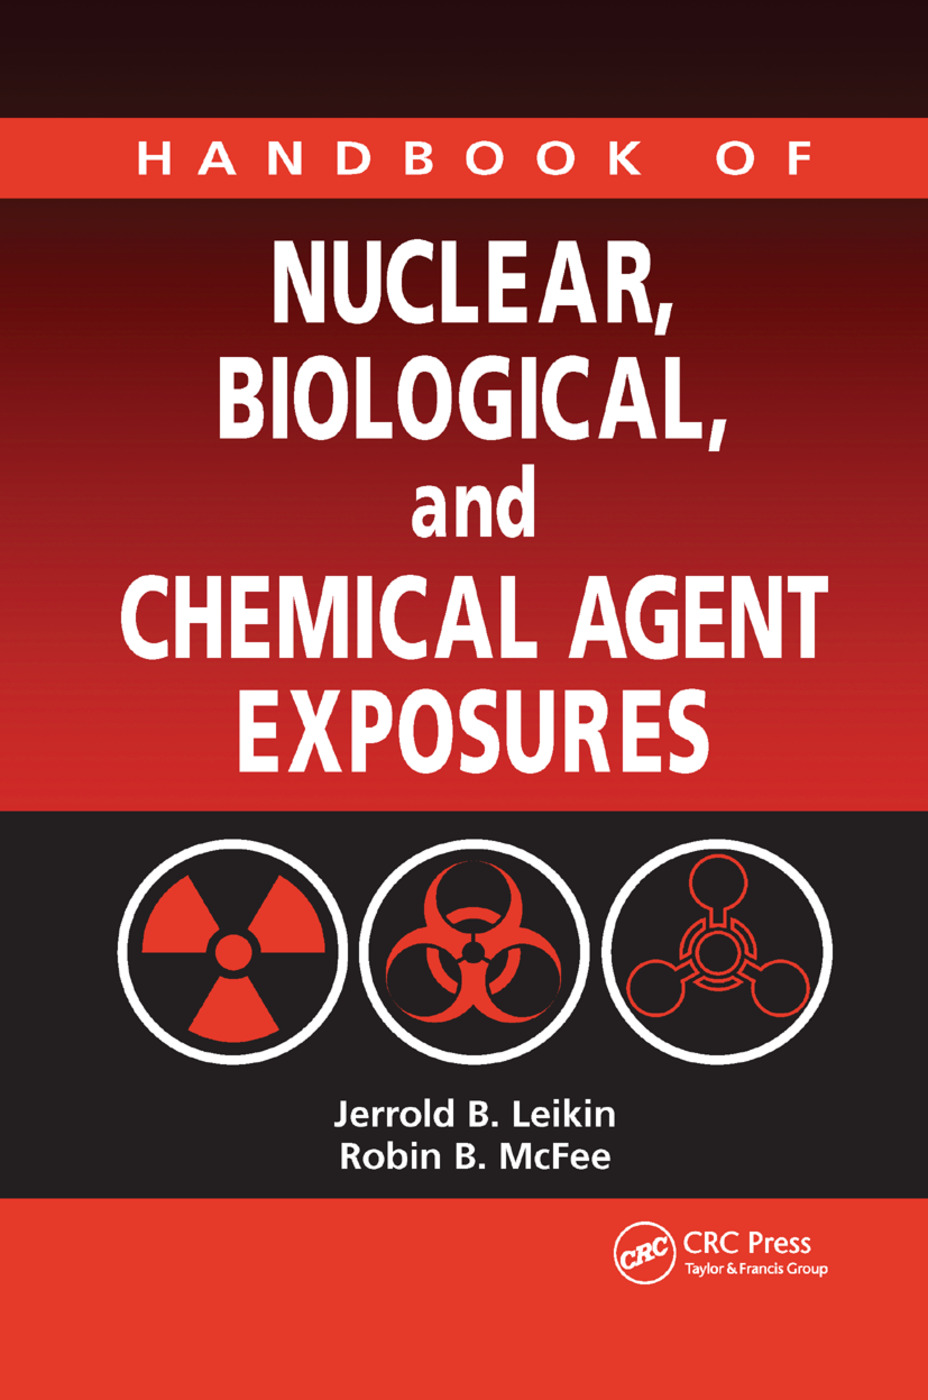 Handbook of Nuclear, Biological, and Chemical Agent Exposures: 1st Edition (Paperback) book cover